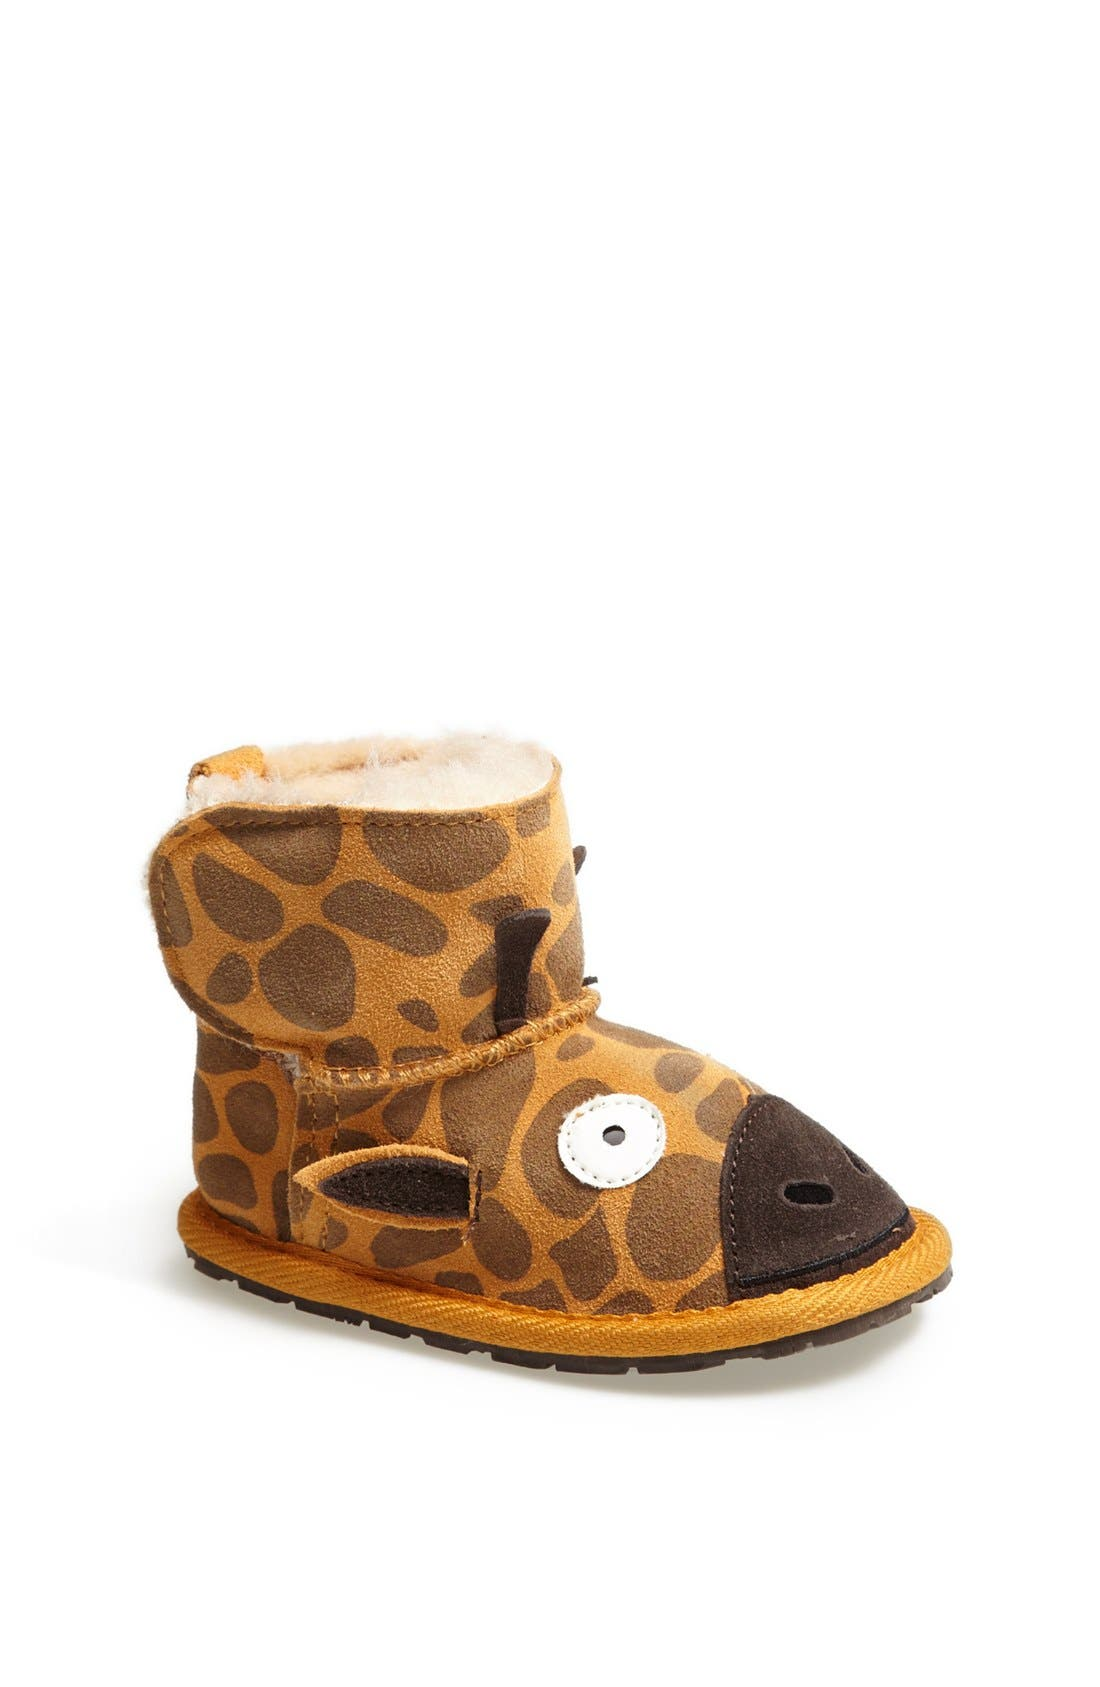 Main Image - EMU Australia 'Little Creatures - Giraffe' Boot (Baby & Walker)